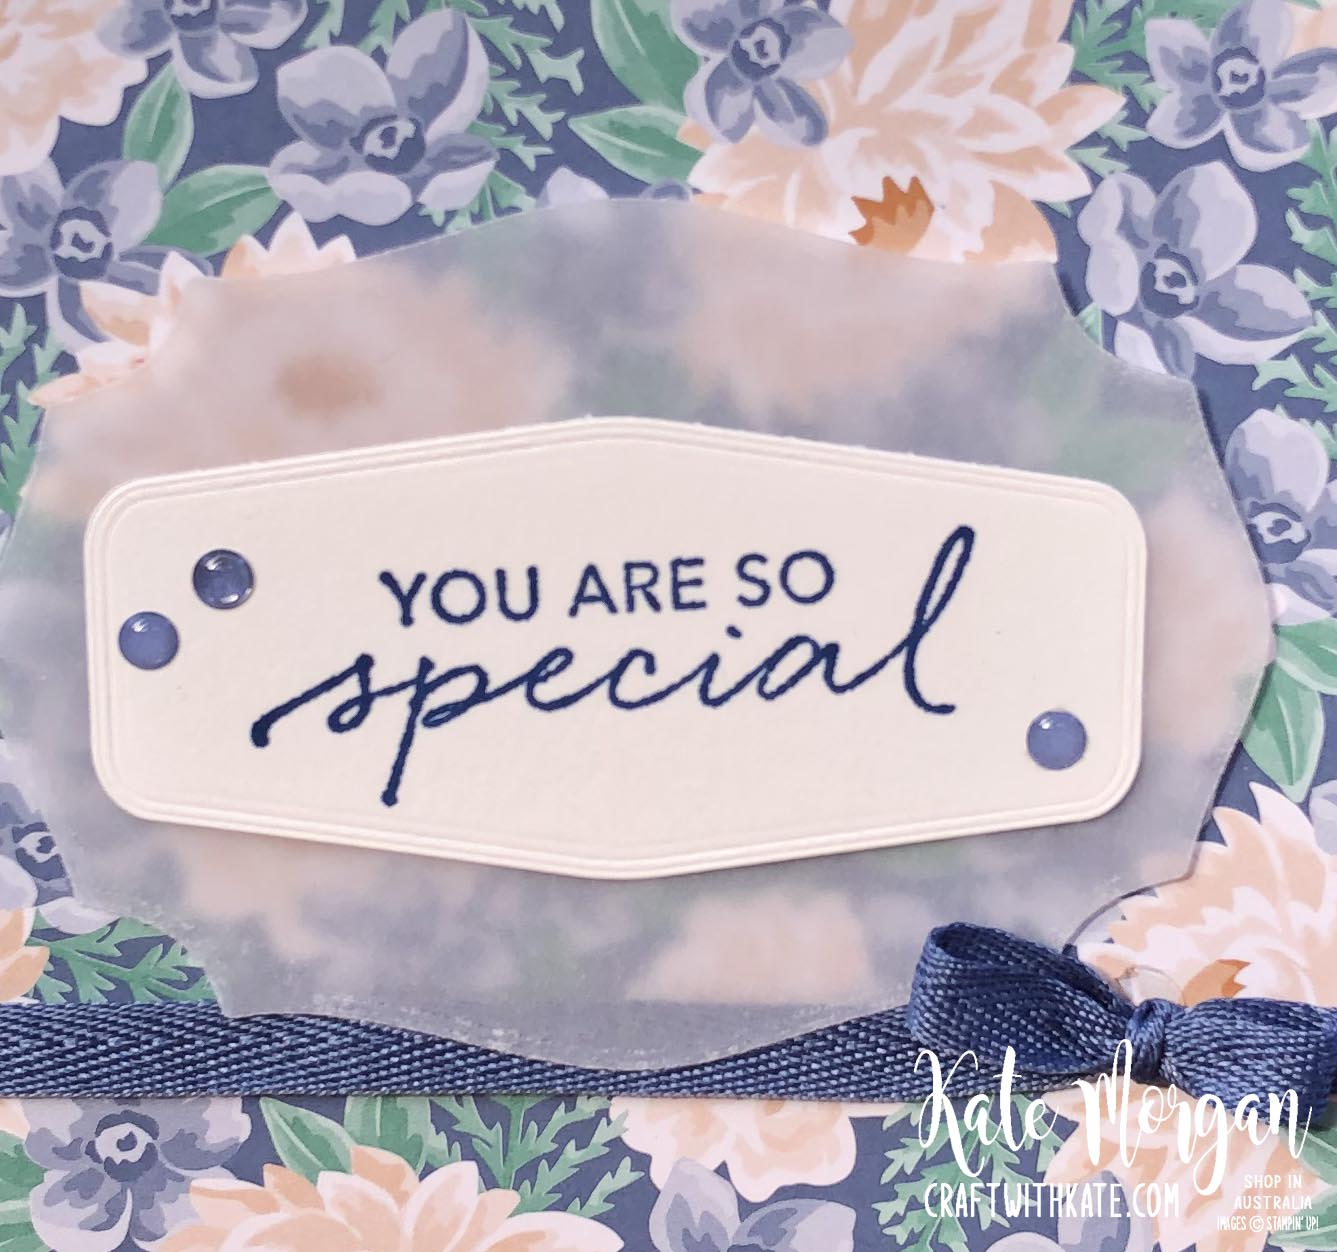 Misty Moonlight & Flowers for Every Season DSP by Kate Morgan, Stampin Up Australia 2020 closeup